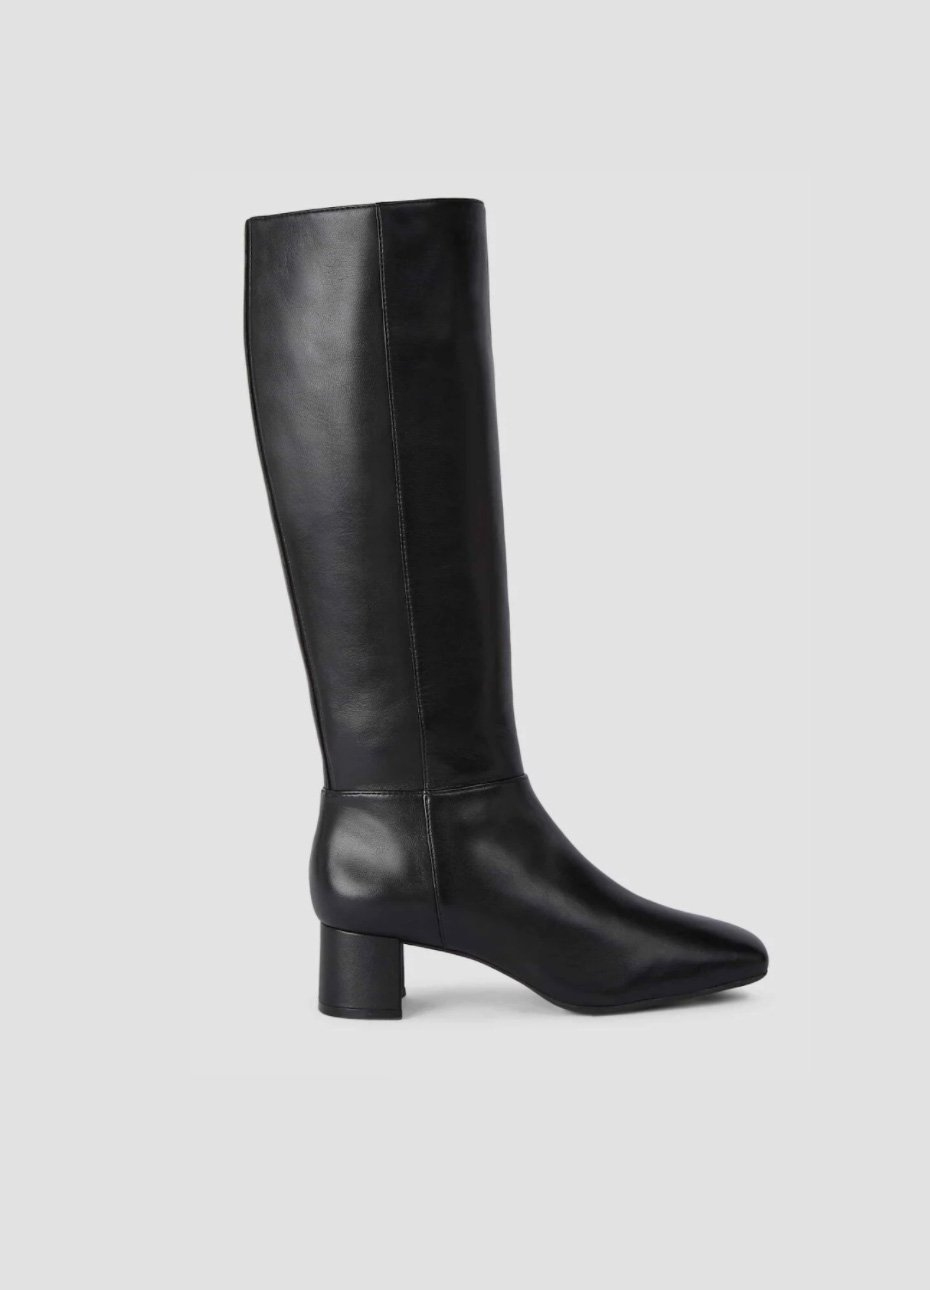 Women's leather mid-heeled knee-high leather boot in black from Hobbs.